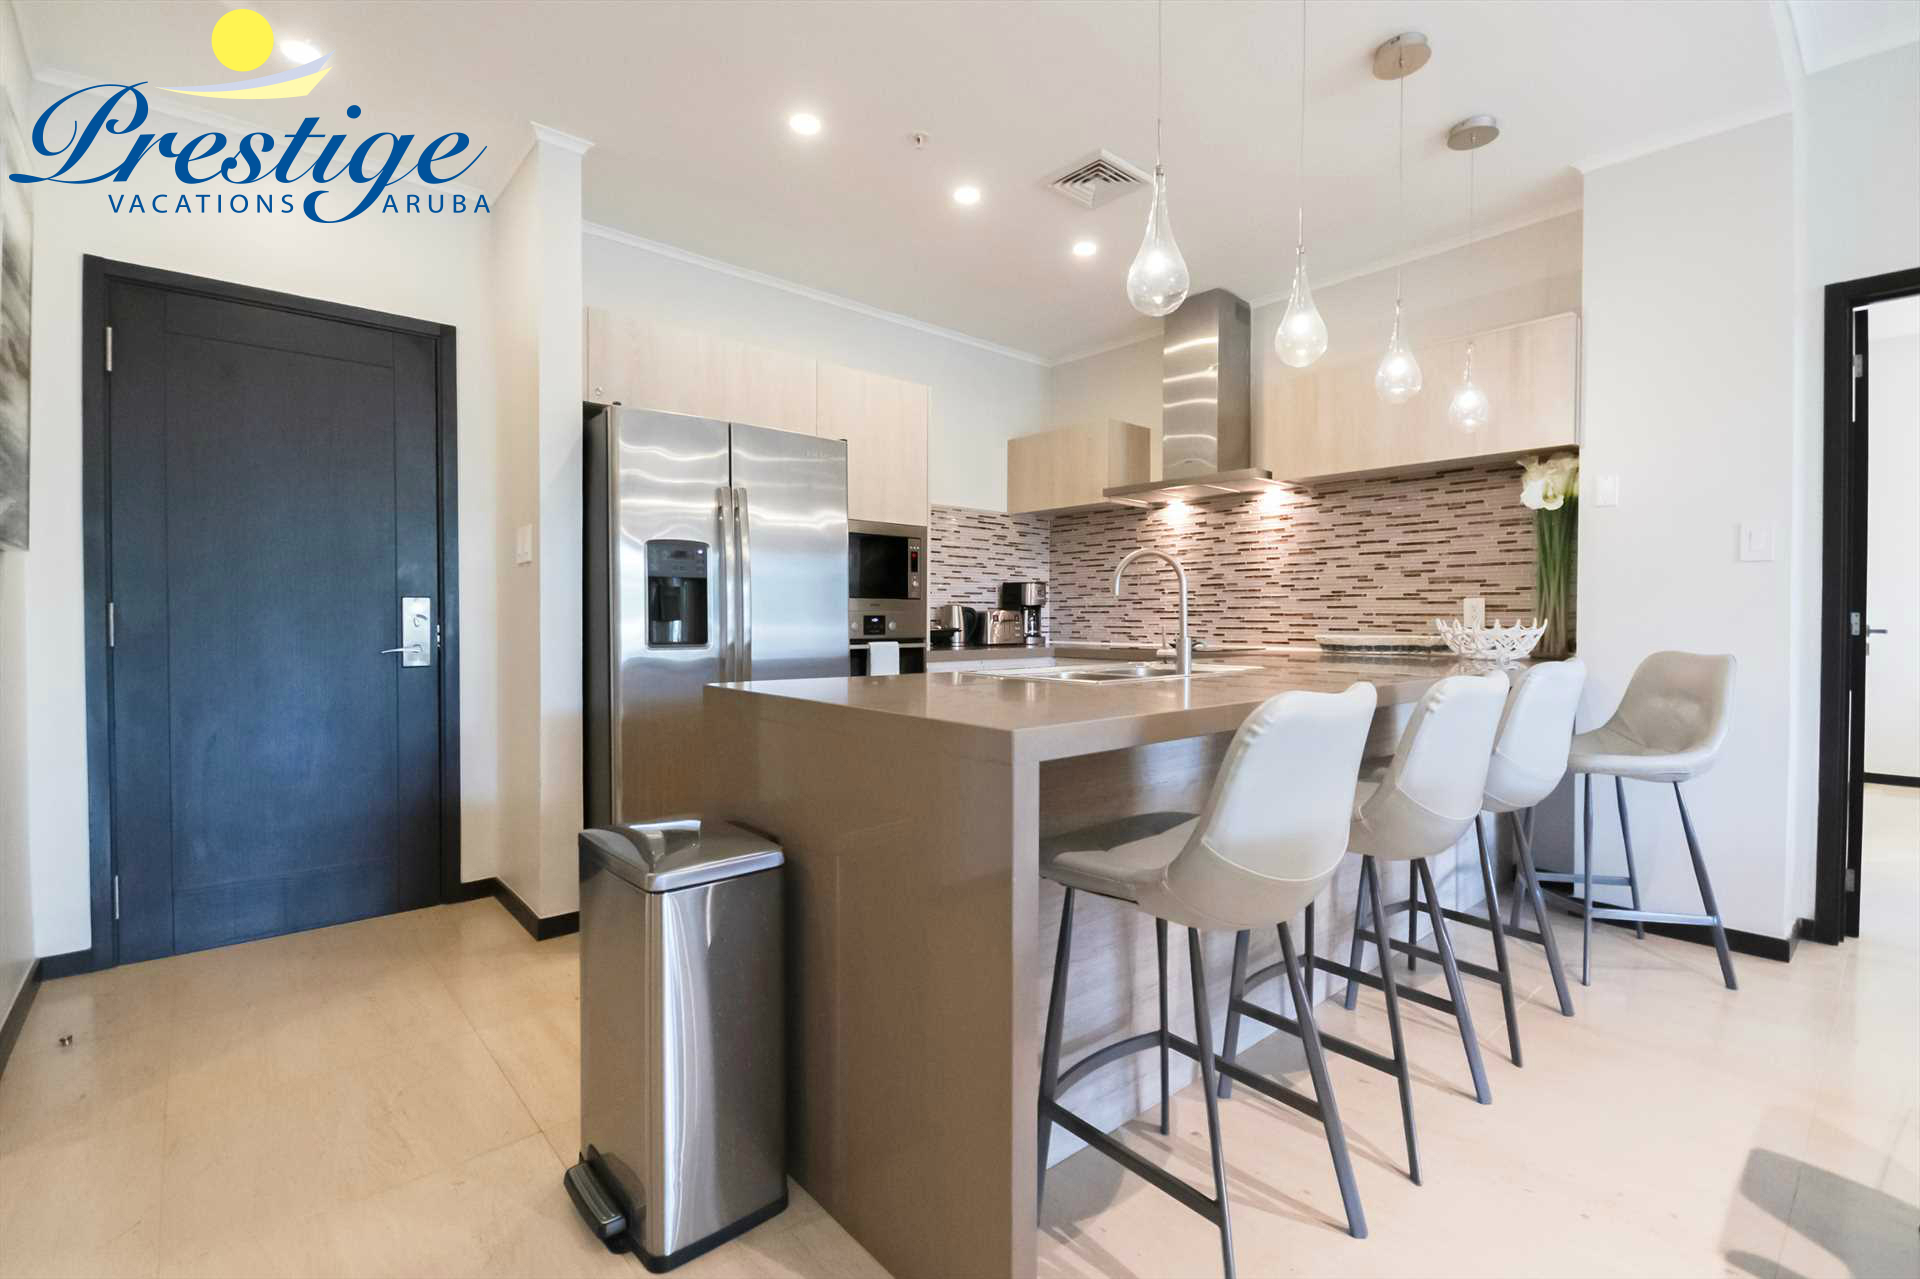 Fully equipped kitchen with 4-bar stools